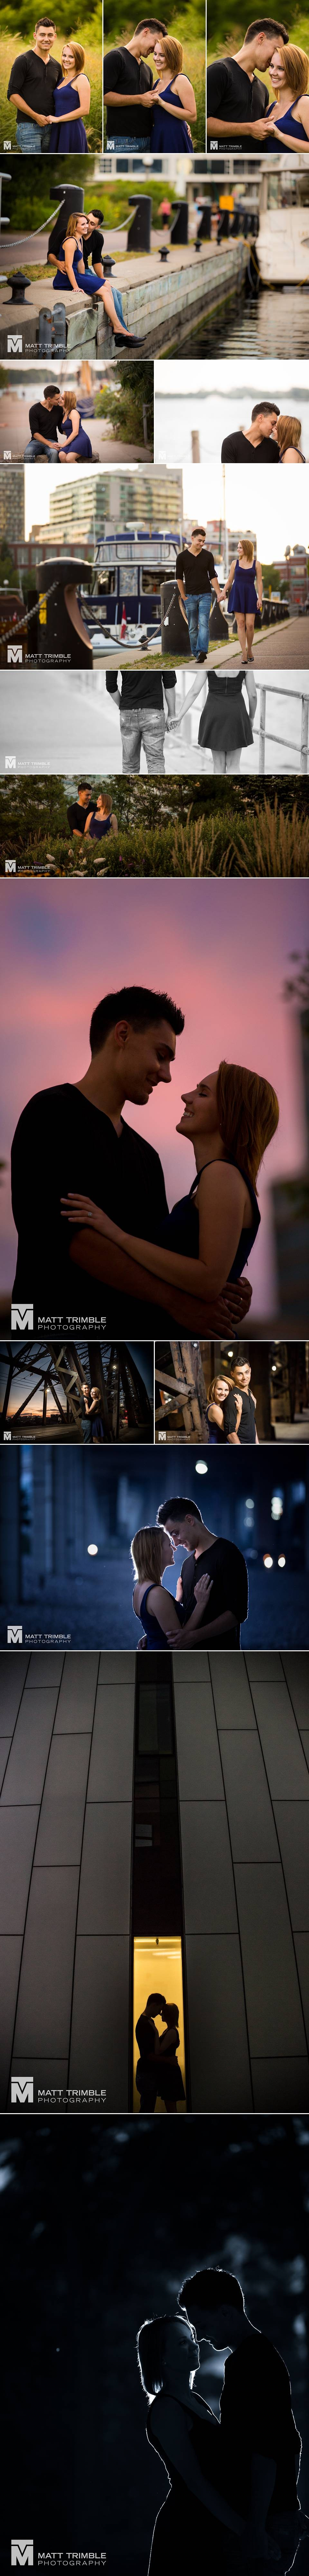 Engagement photography in downtown toronto